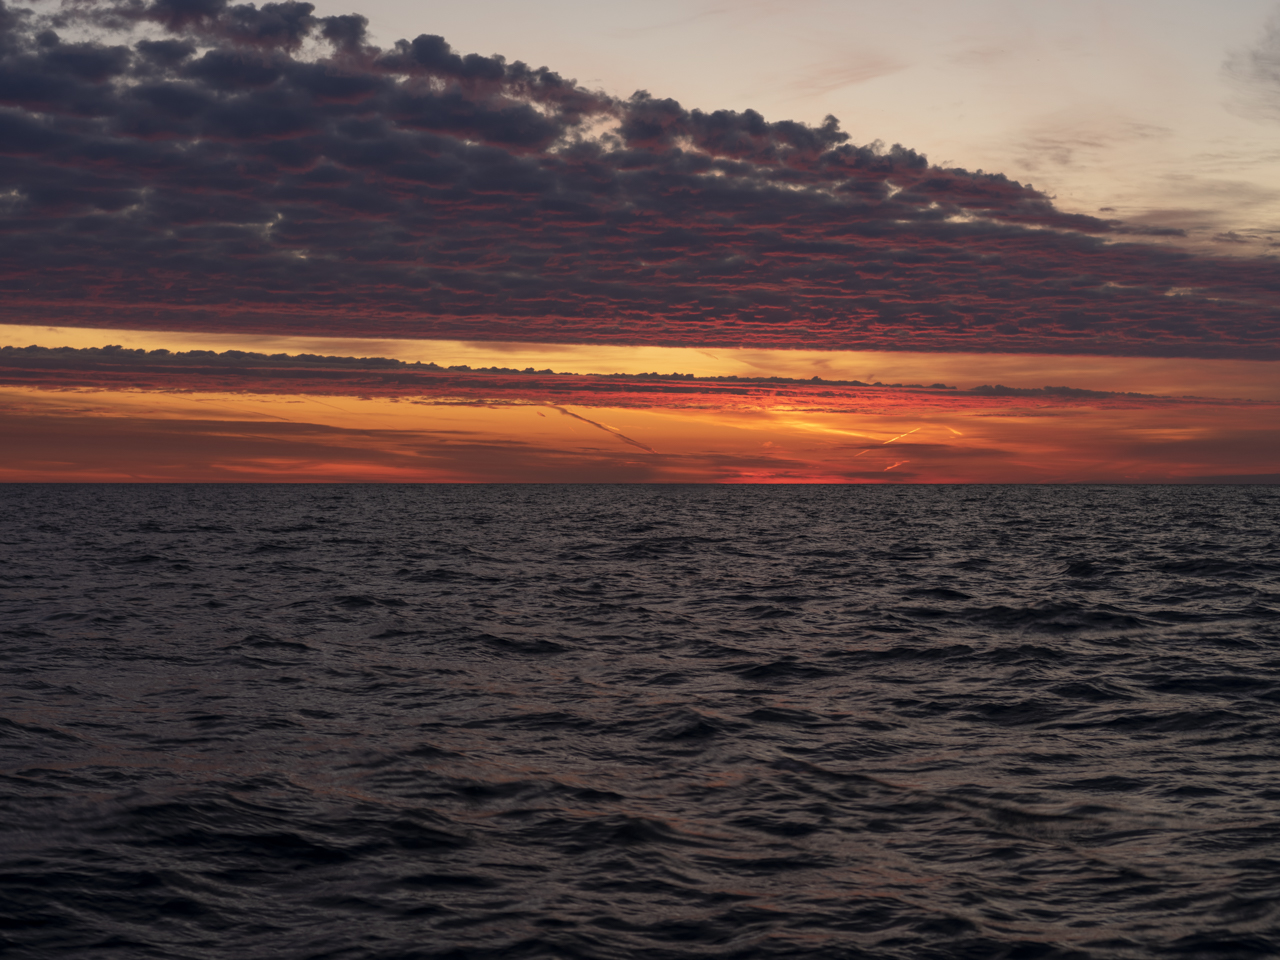 candy reds and yellows fill the skies over Lake Michigan